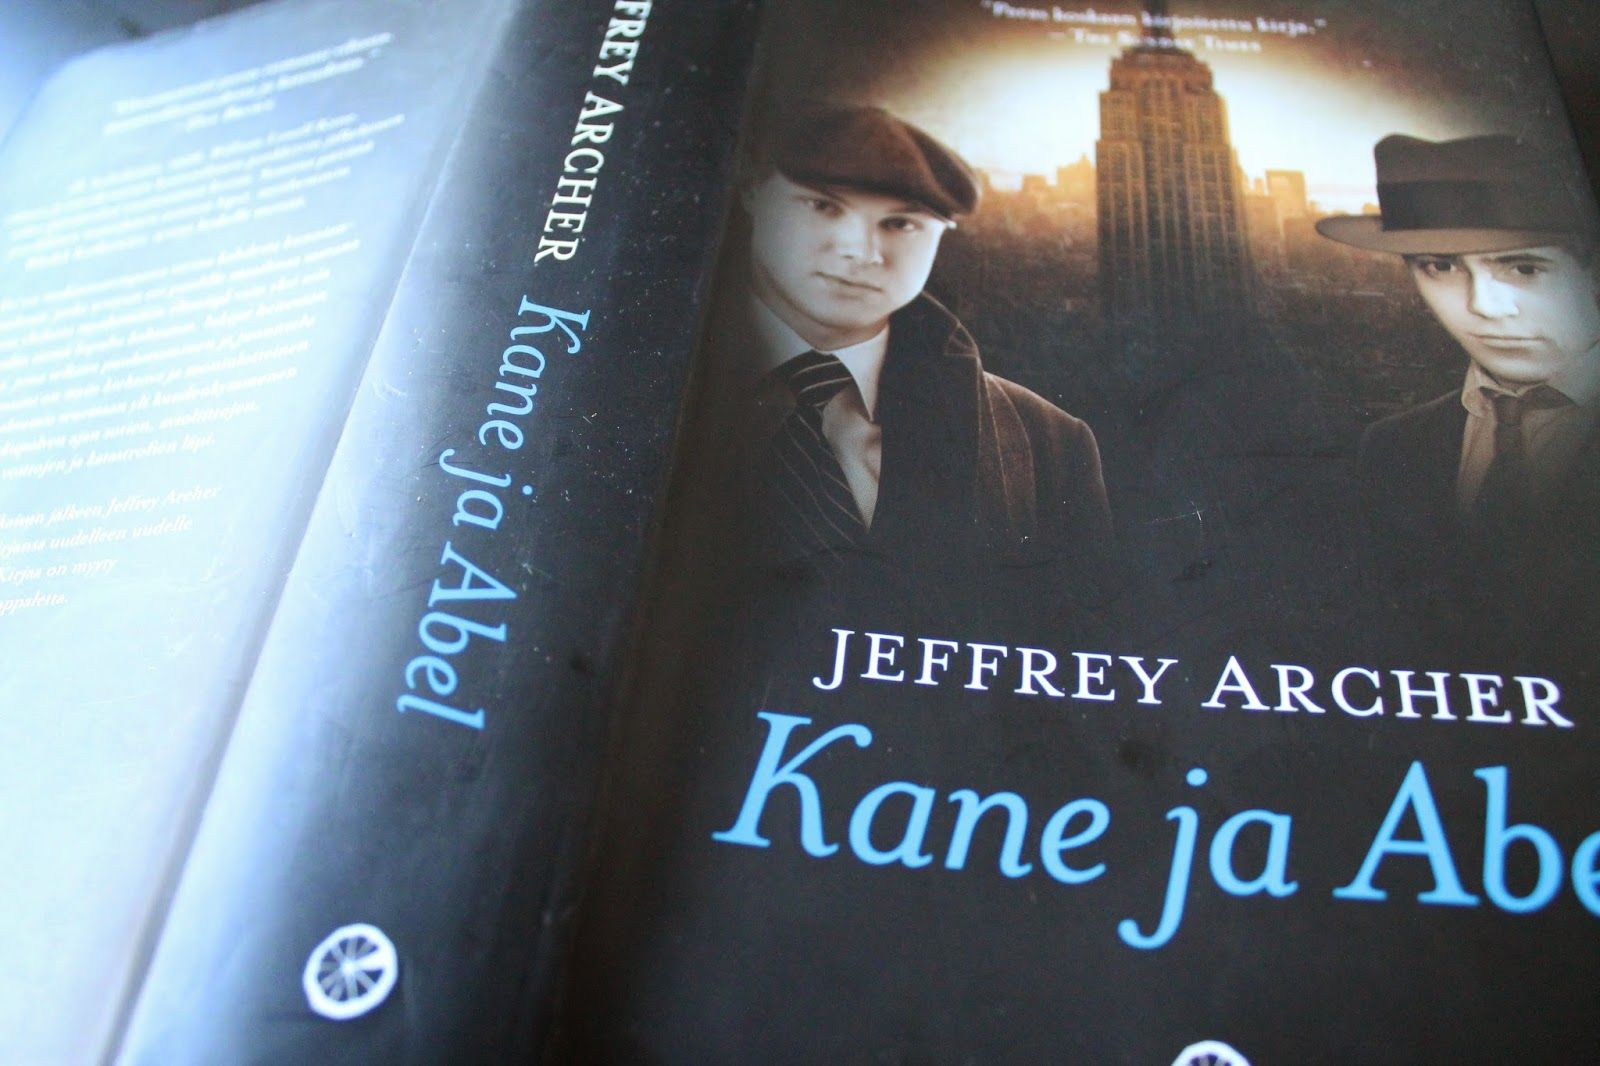 Jeffrey Archer Libros Mari A N Kirjablogi Jeffrey Archer Kane Ja Abel Books To Read